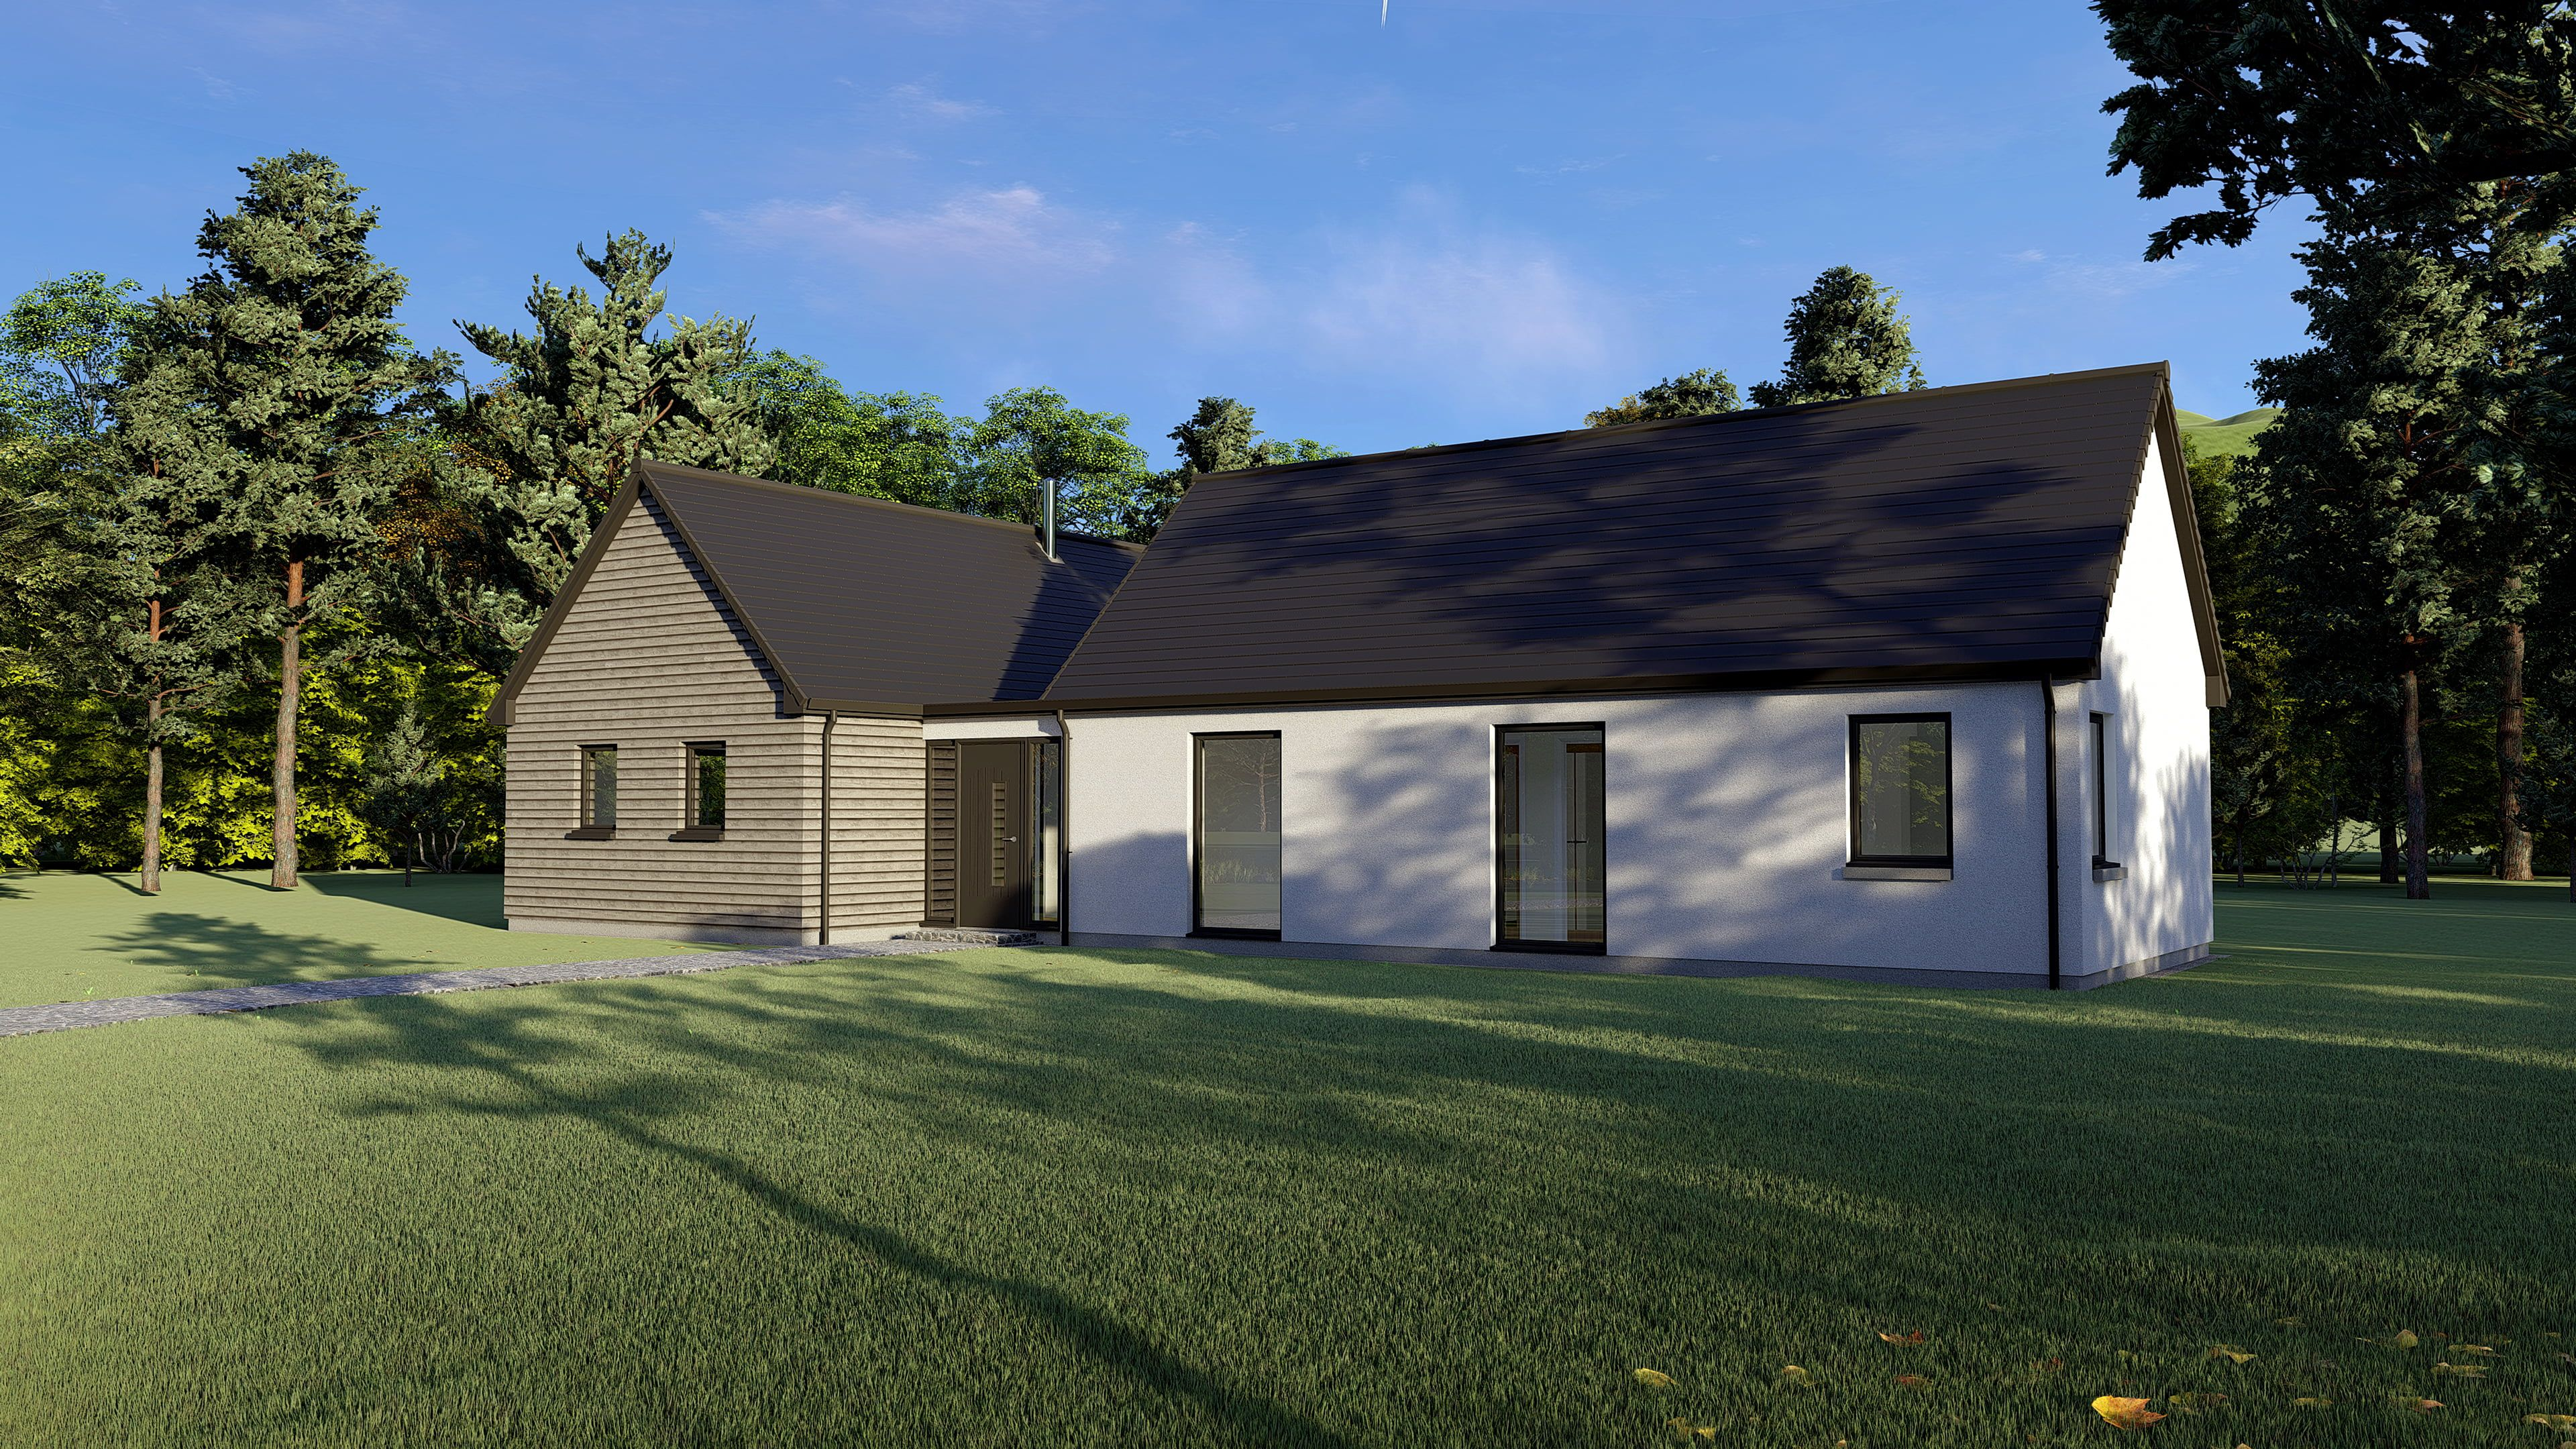 TH04 Thermohaus Timber Frame Kit Homes in 2020 Kit